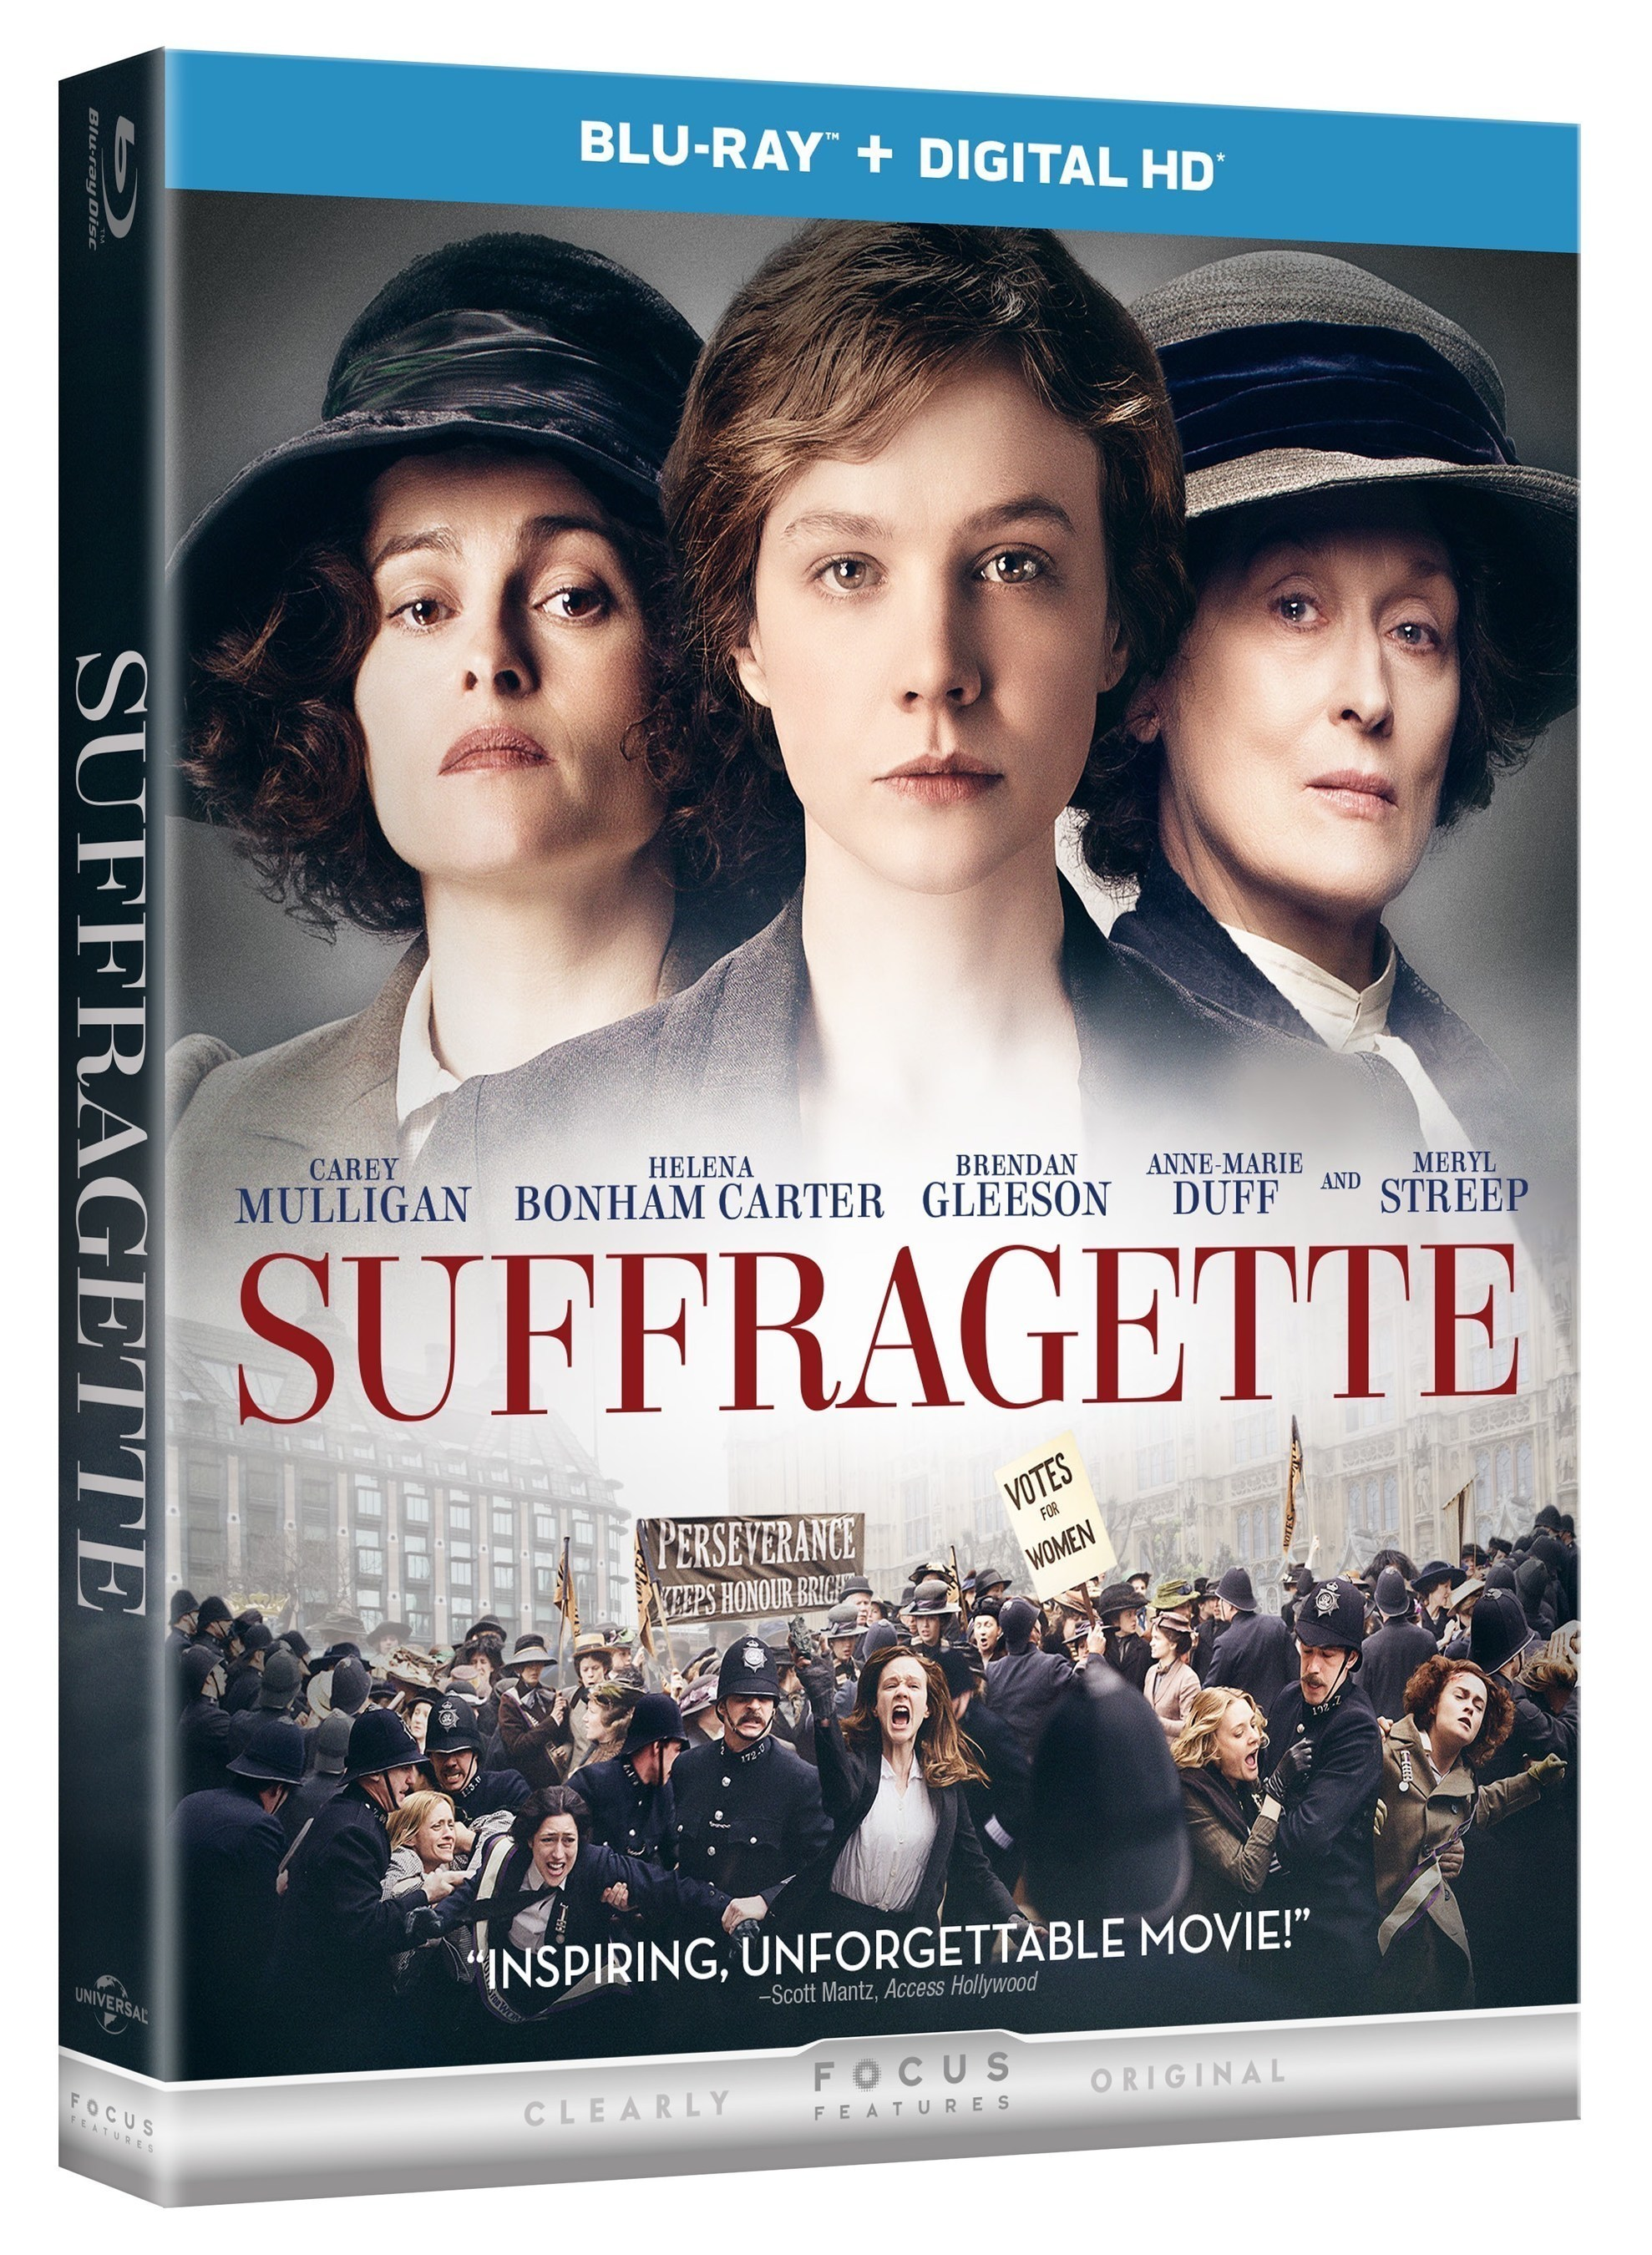 From Universal Pictures Home Entertainment: Suffragette